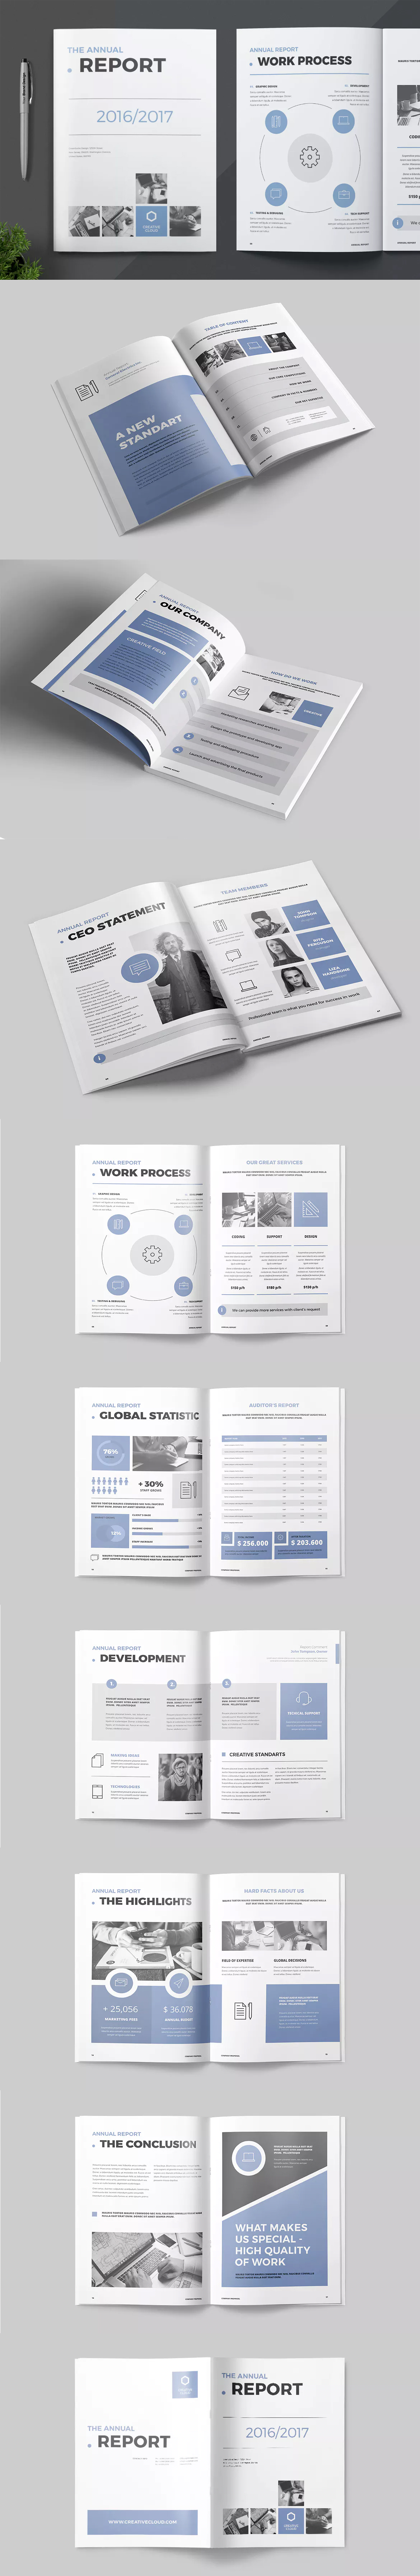 Annual Report Template InDesign INDD A4 Annual